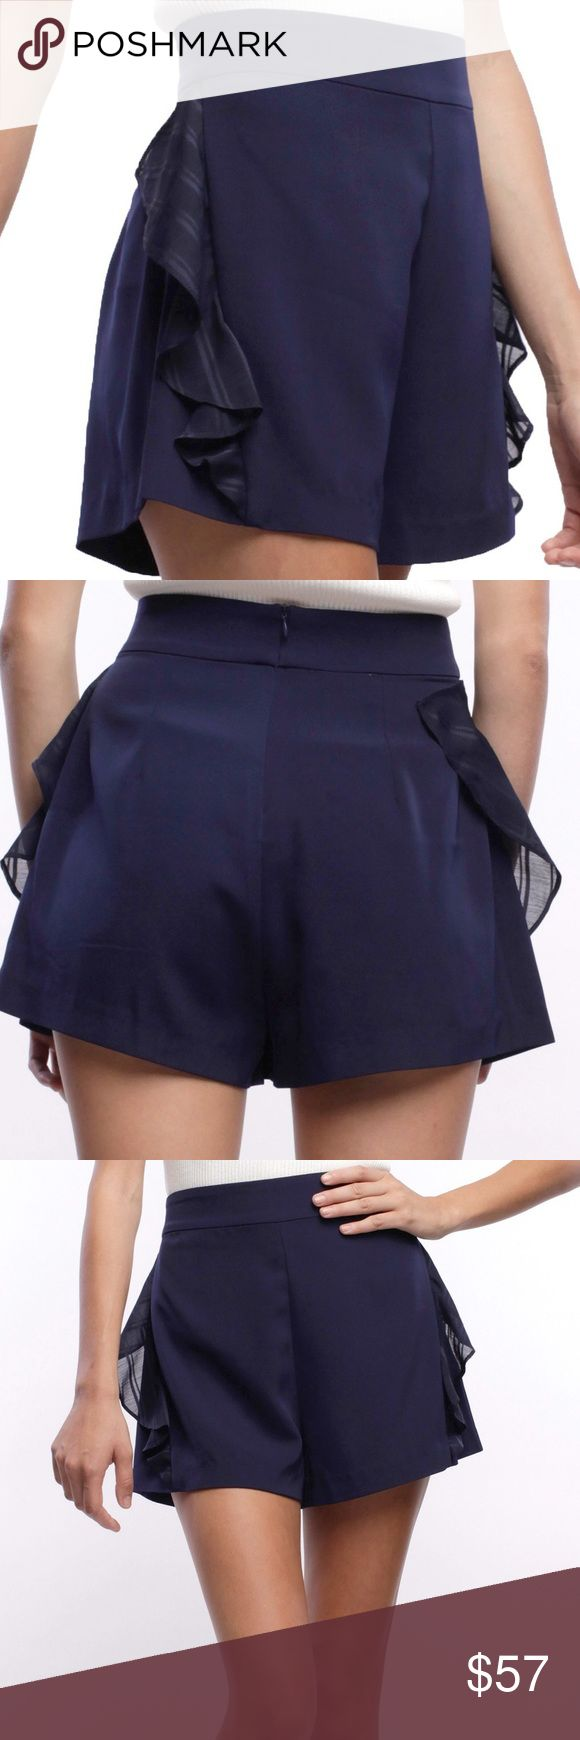 """Oscar shorts by Line + Dot Navy blue high waisted shorts.""""SELF-97% POLYESTER 3% SPAN LINING-100% POLYESTER"""" Designed in Sunny California. Imported. Dry clean only. Price Firm Line & Dot Shorts"""